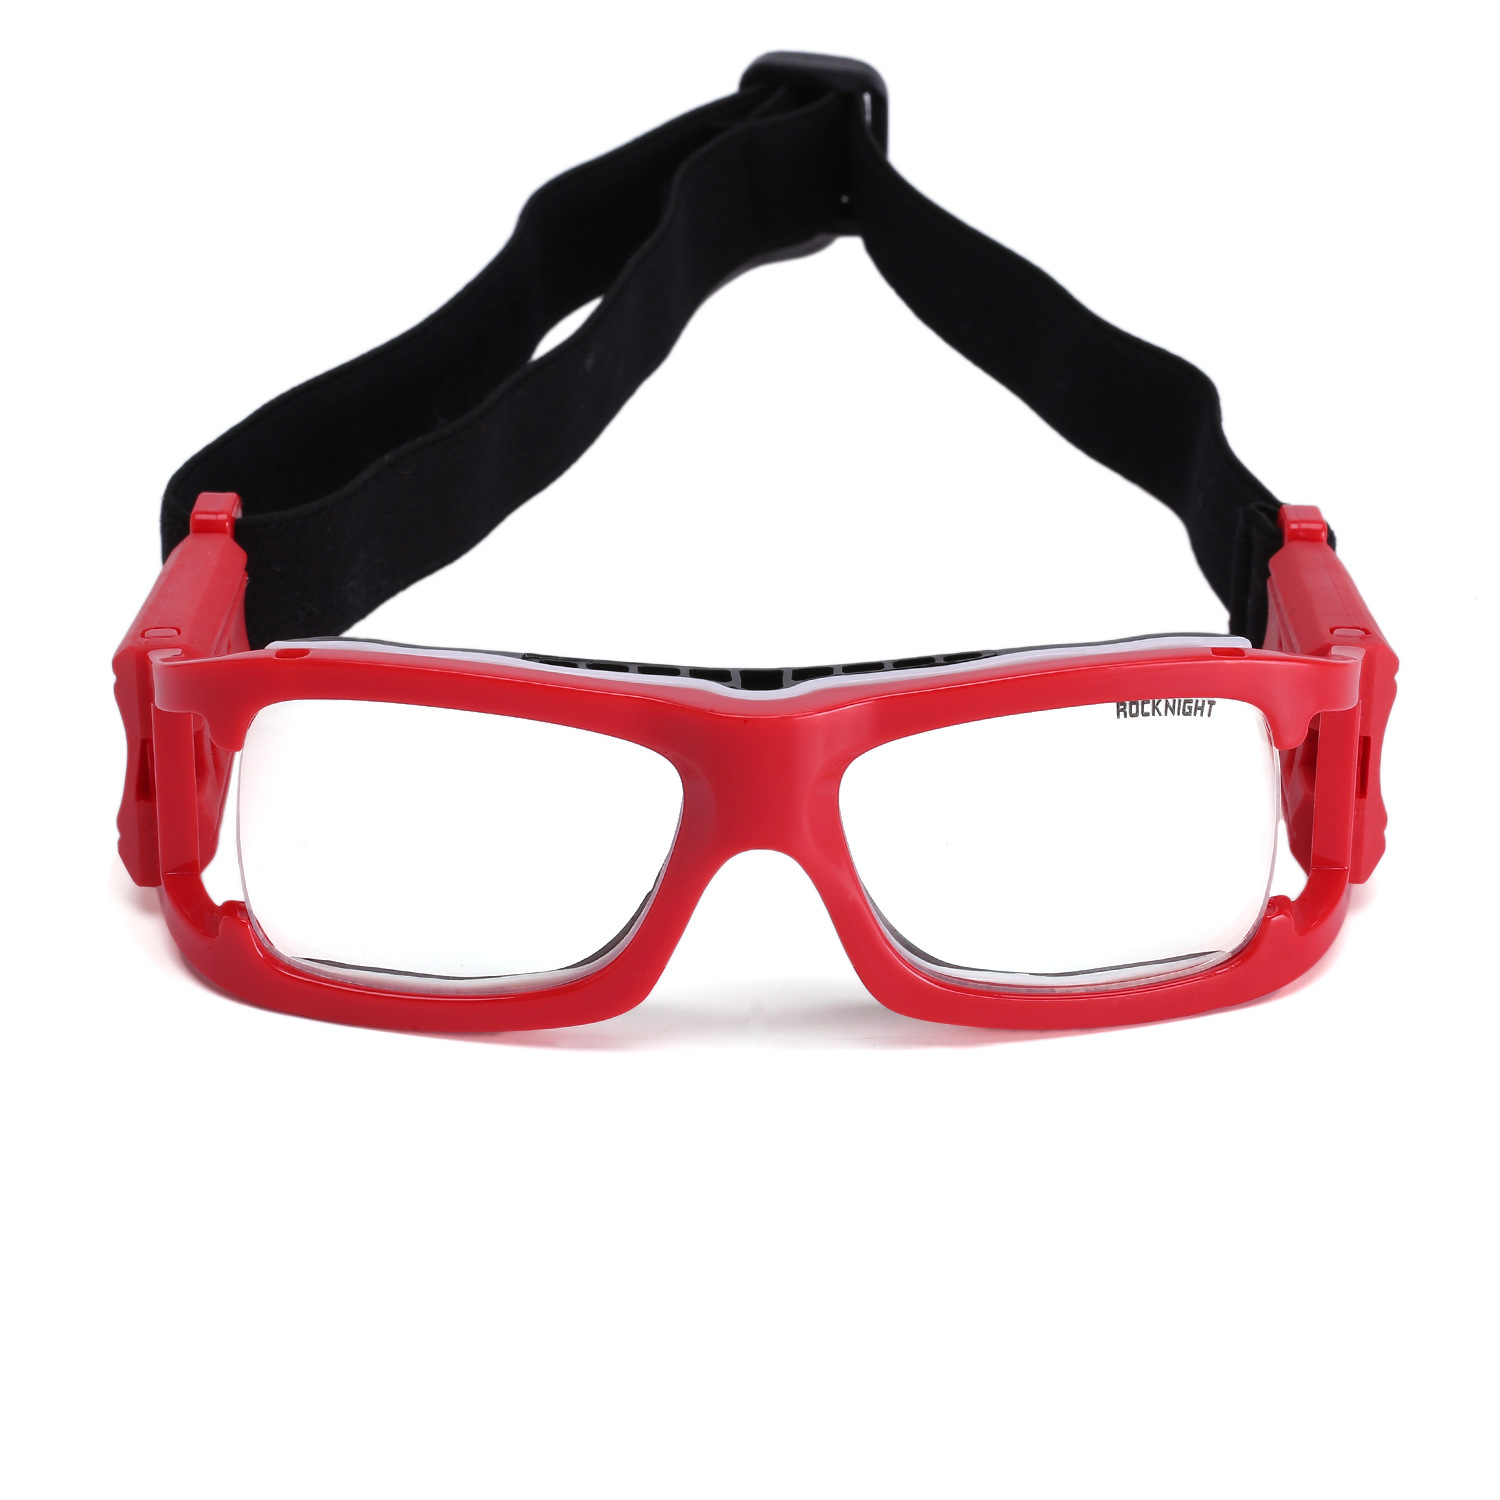 e6d622adcc ROCKNIGHT Sports Goggles Protective Safety Basketball Glasses for Adults  with Adjustable Strap for Basketball Football Volleyball Hockey Rugby (Red)  ...